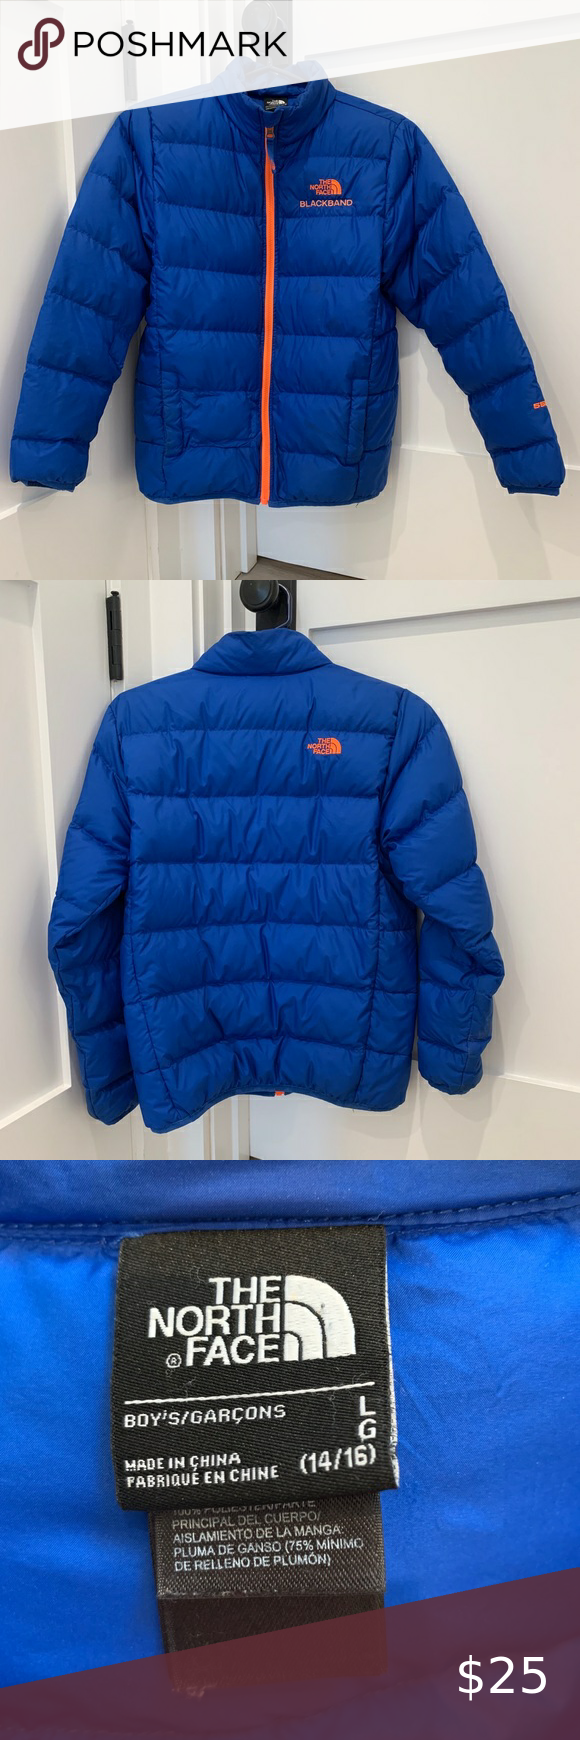 The North Face Boys Puffer Jacket Boys Puffer Jacket North Face Thermoball Jacket North Face Winter Coat [ 1740 x 580 Pixel ]